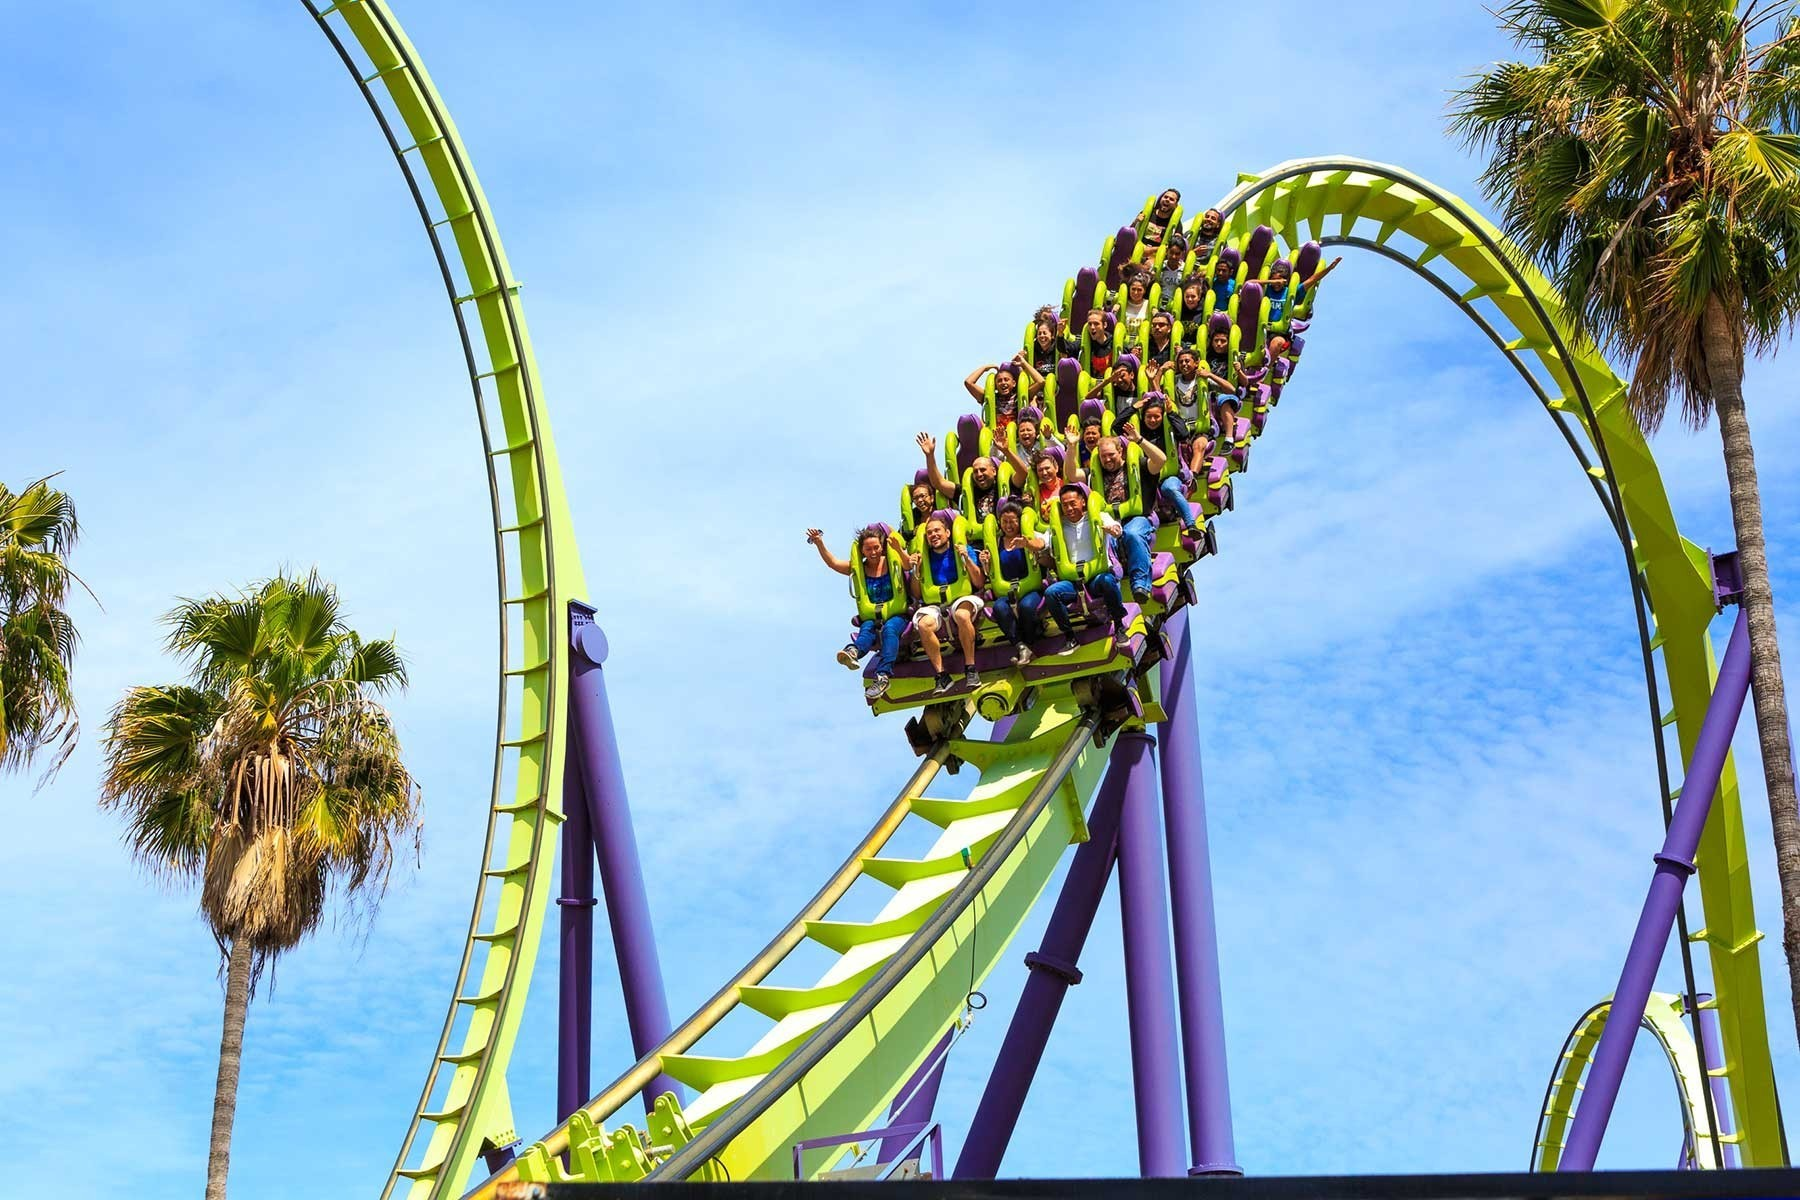 Slide 10 of 19: Northern California's longest and highest roller coaster is the adrenalin-charged Medusa at Six Flags Discovery Kingdom. A 46-metre (150-foot) climb and then a drop just as steep lead to you getting catapulted through one of the world's tallest vertical loops (at 39 metres or 128 feet high). Riders can look forward to feeling their stomachs do flips during the roller coaster's dive loop and zero-G roll, too.